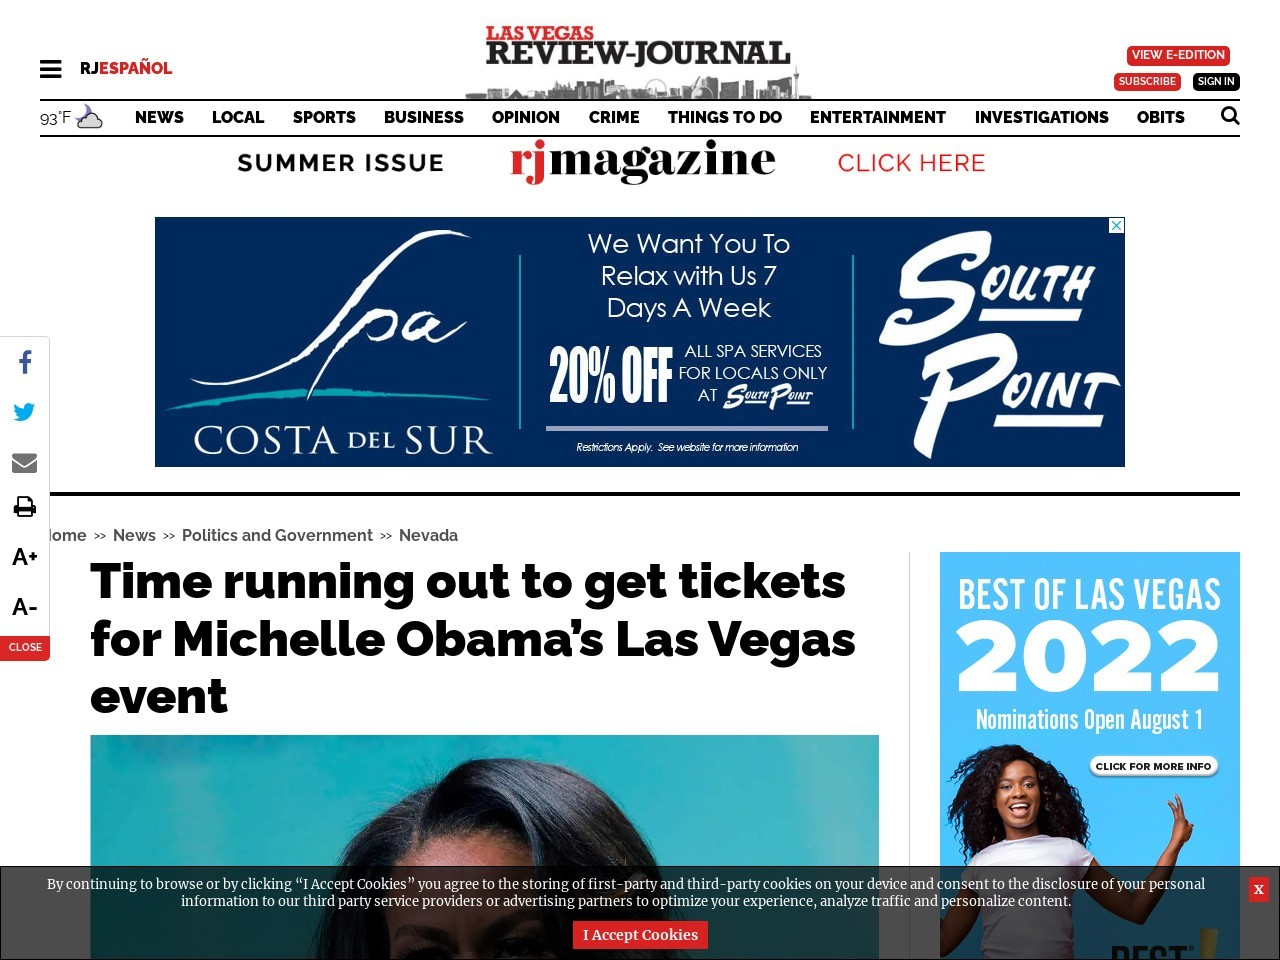 Time running out to get tickets for Michelle Obama's Las Vegas event